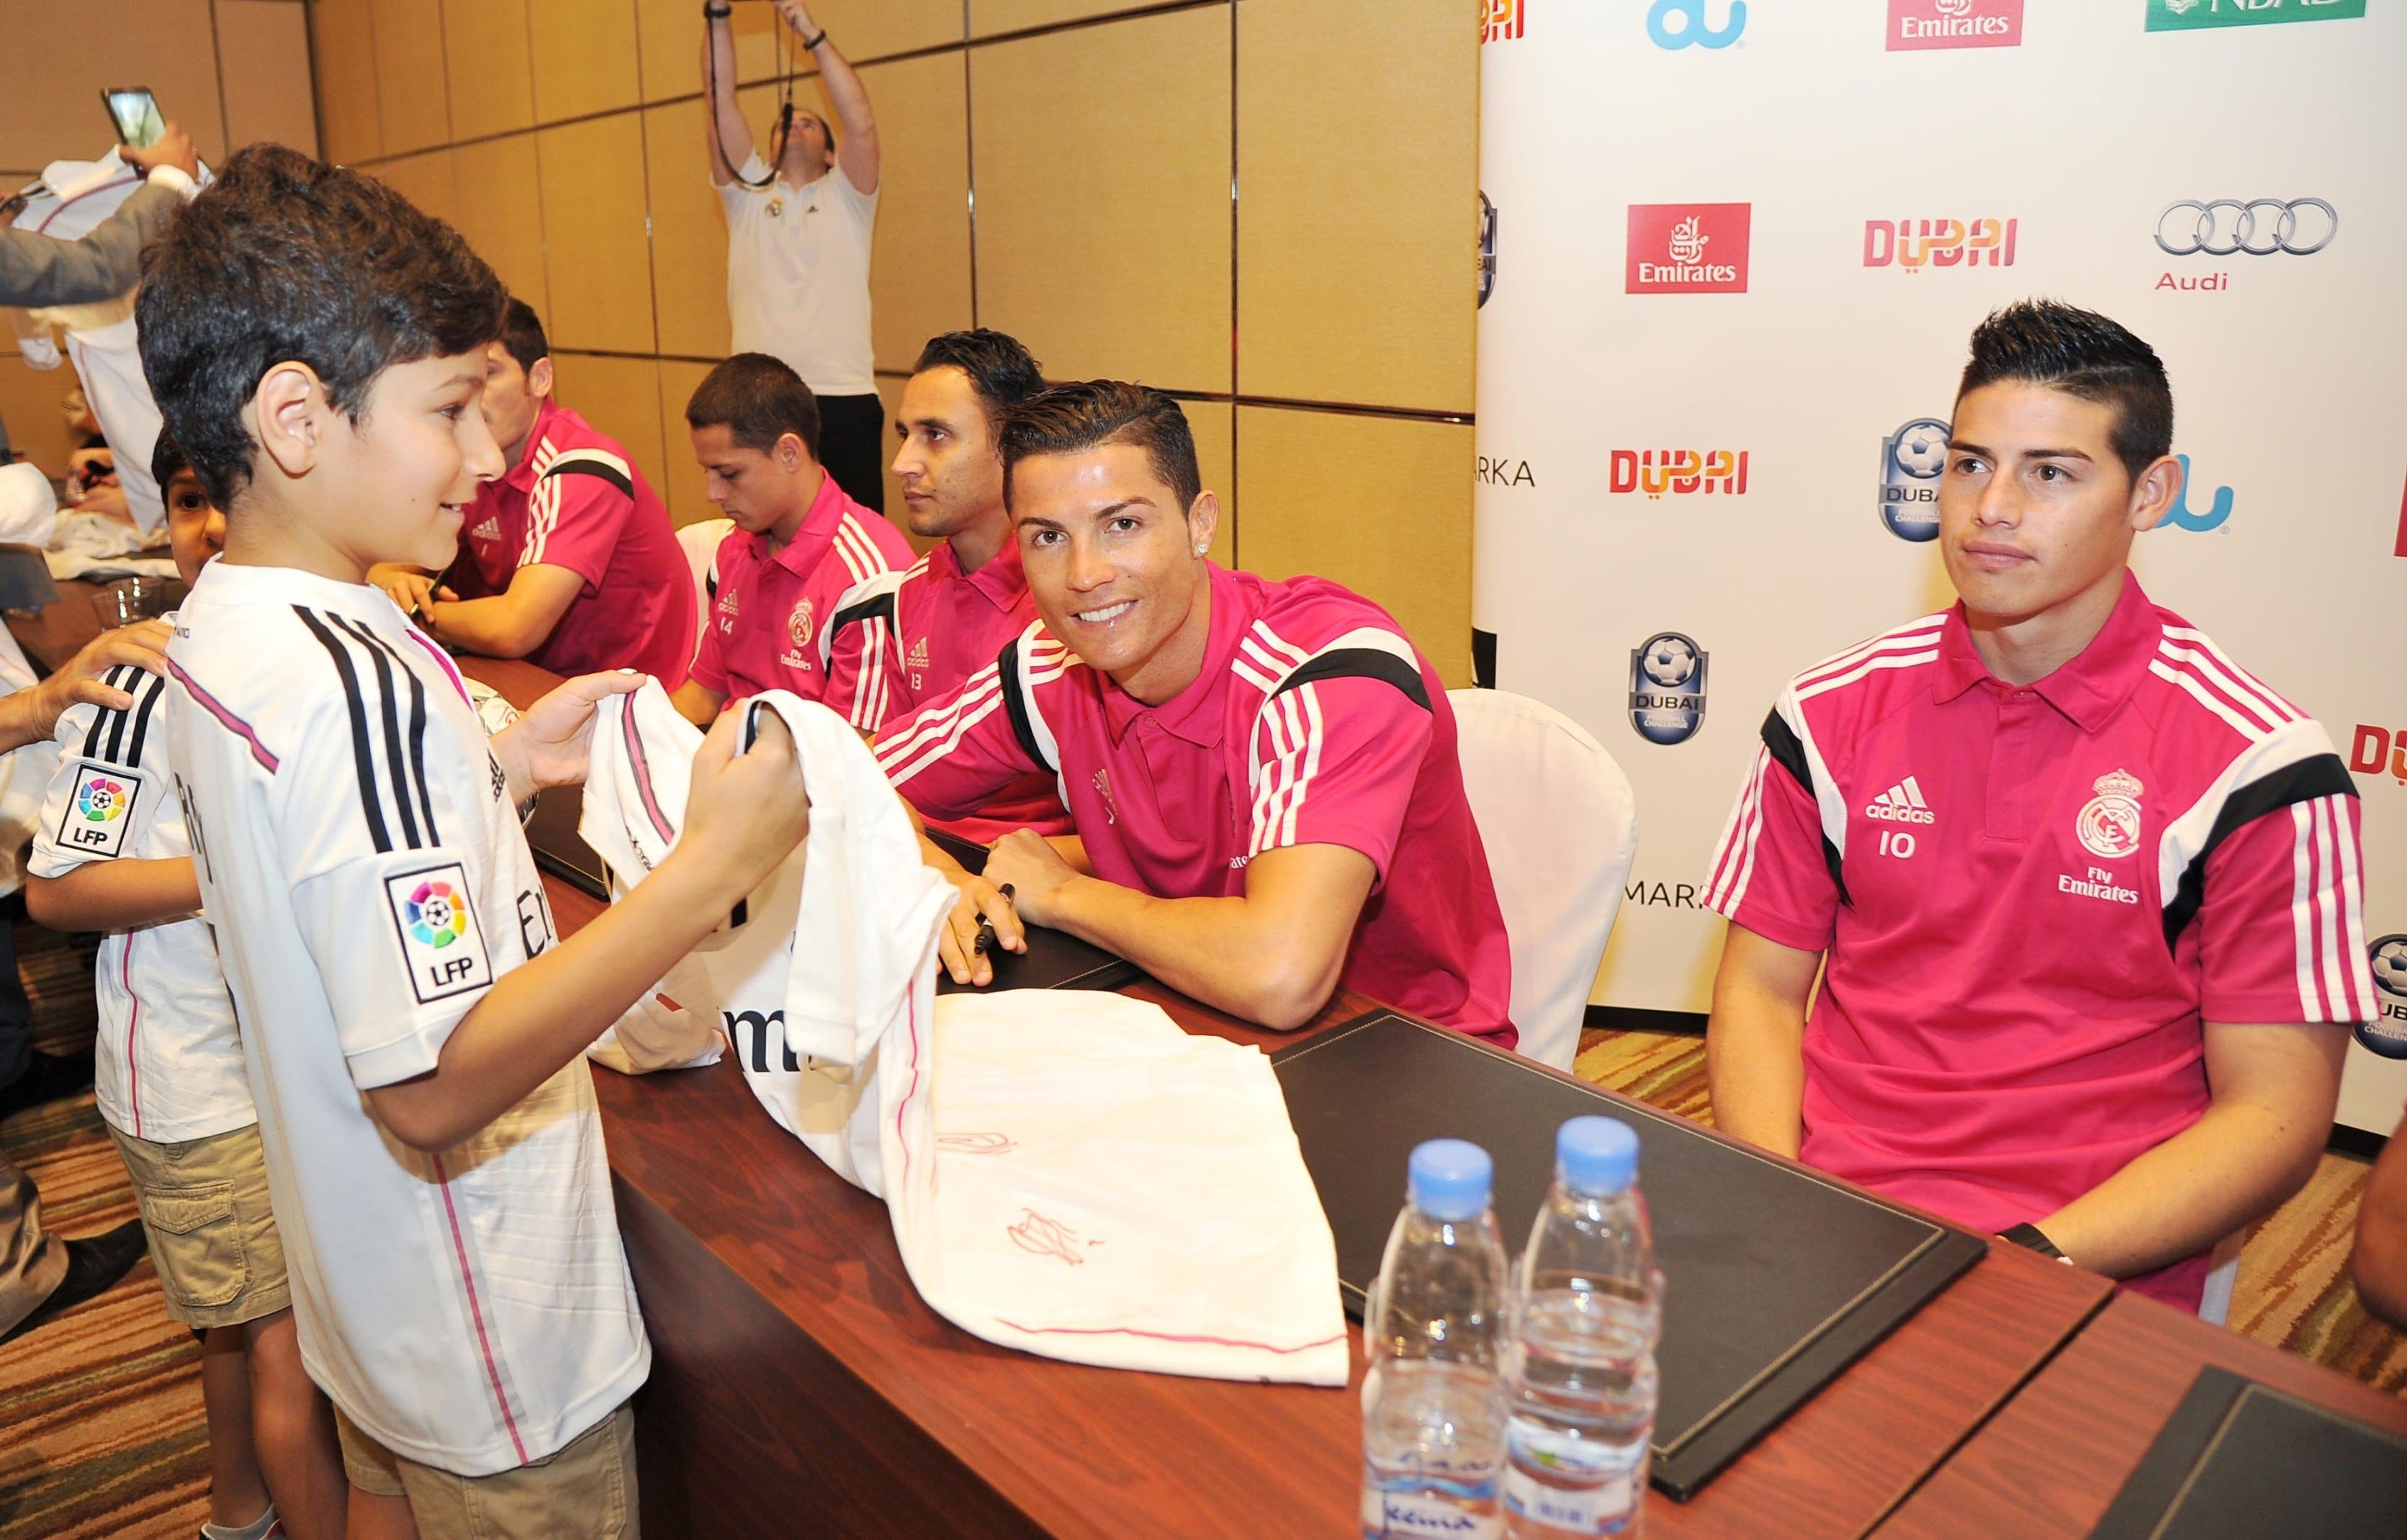 Real Madrid star forward Cristiano Ronaldo seen with a young fan. (Emirates)